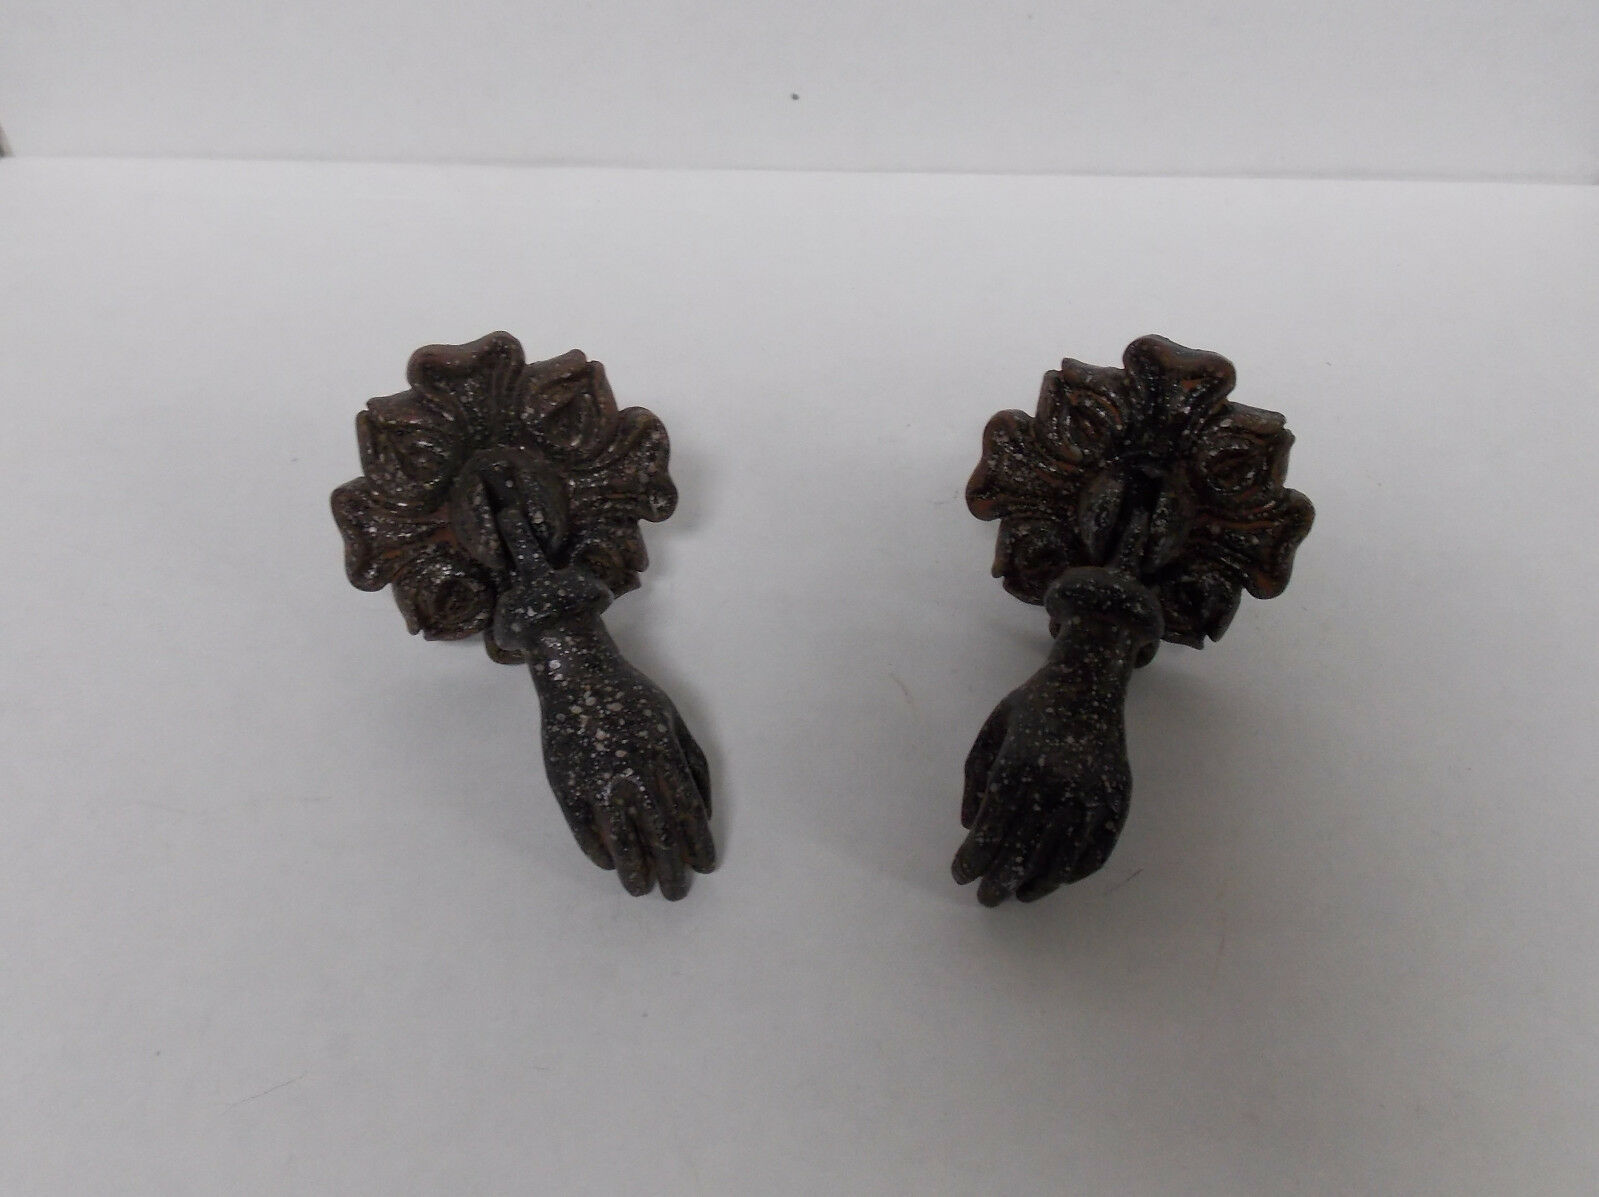 2 Vintage Style Hand Holding Ball Cast Pewter Drawer Cabinet Pulls Knobs Hardwar